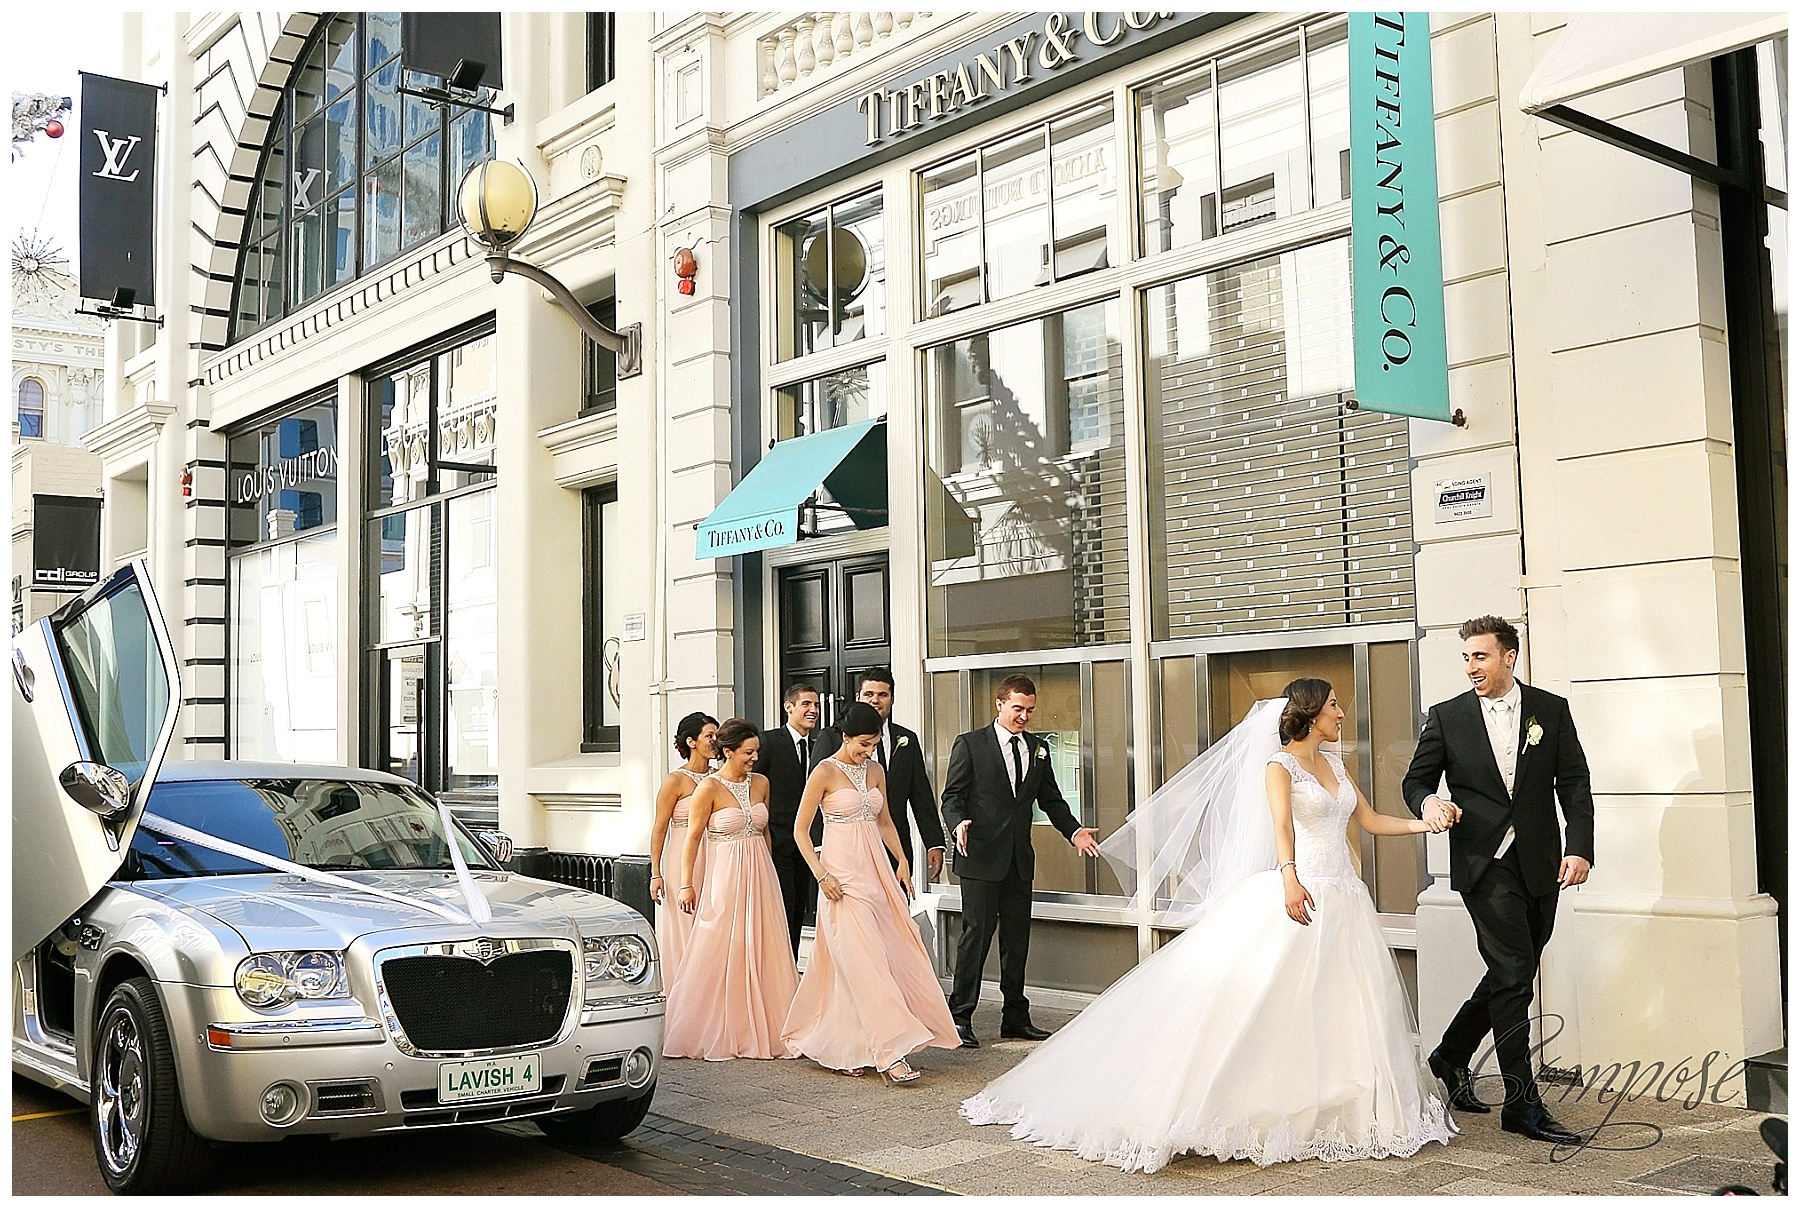 King St Wedding